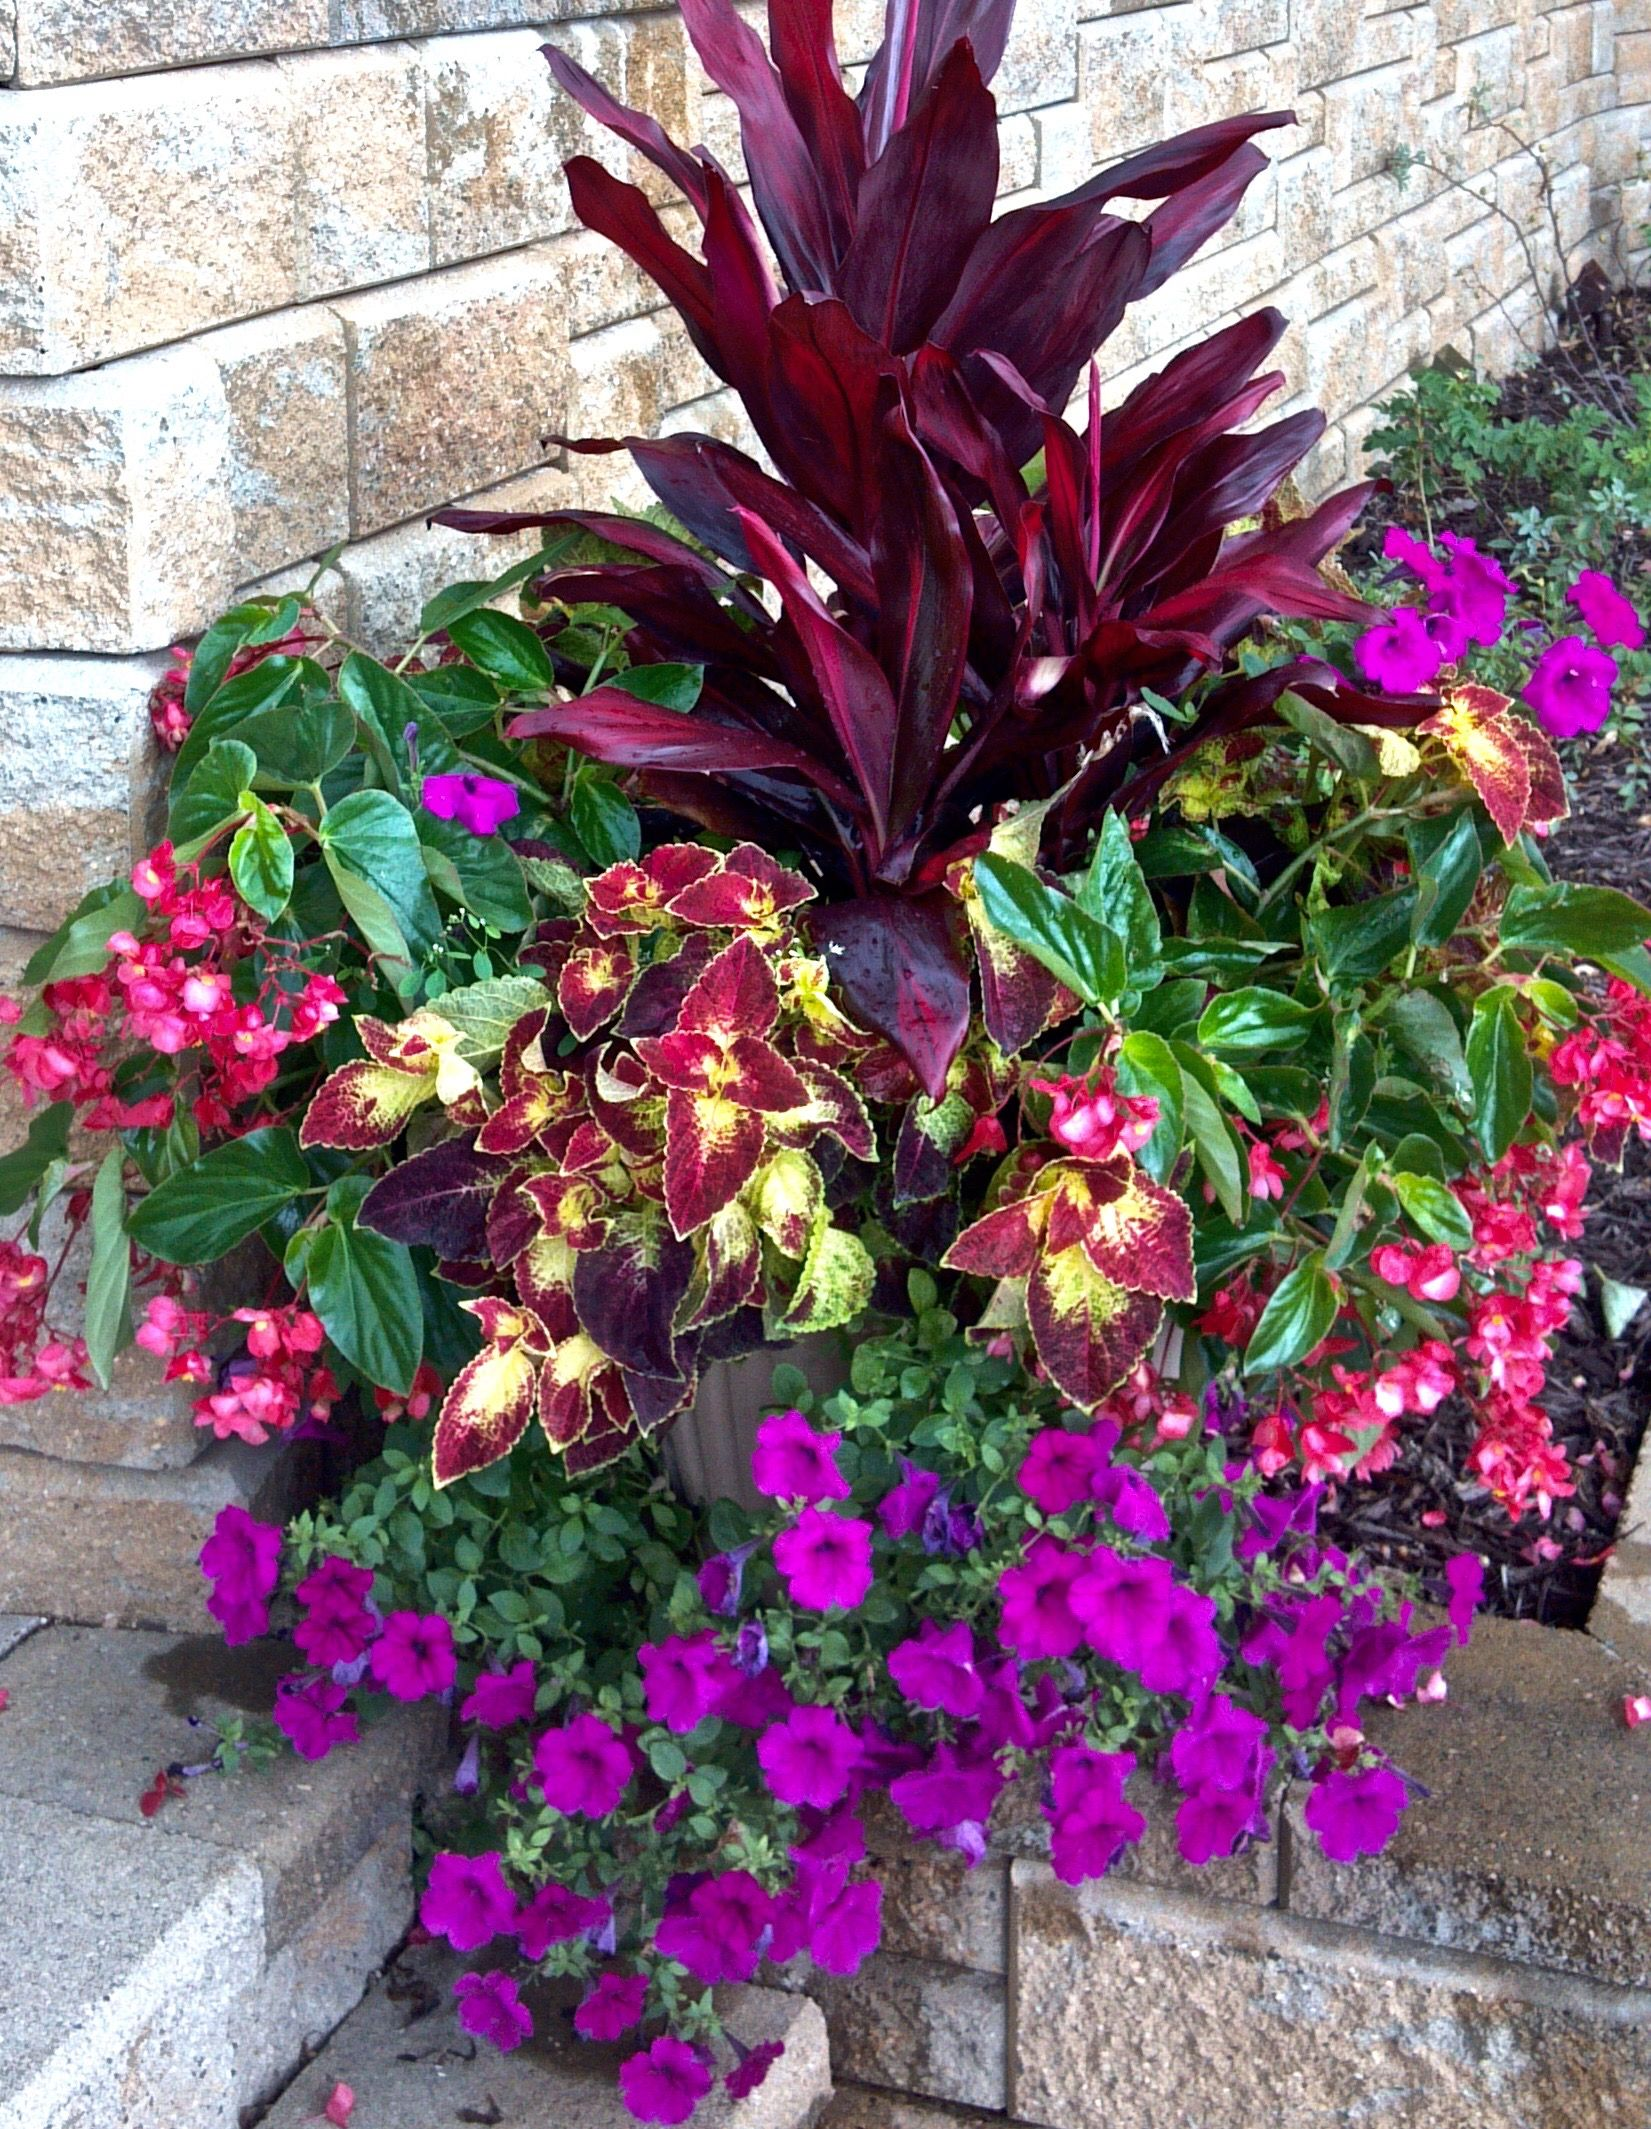 Potted Plants And The Necessary Spring Care: Cordyline Accent Plant With Dragonwing Begonia, Dipt In